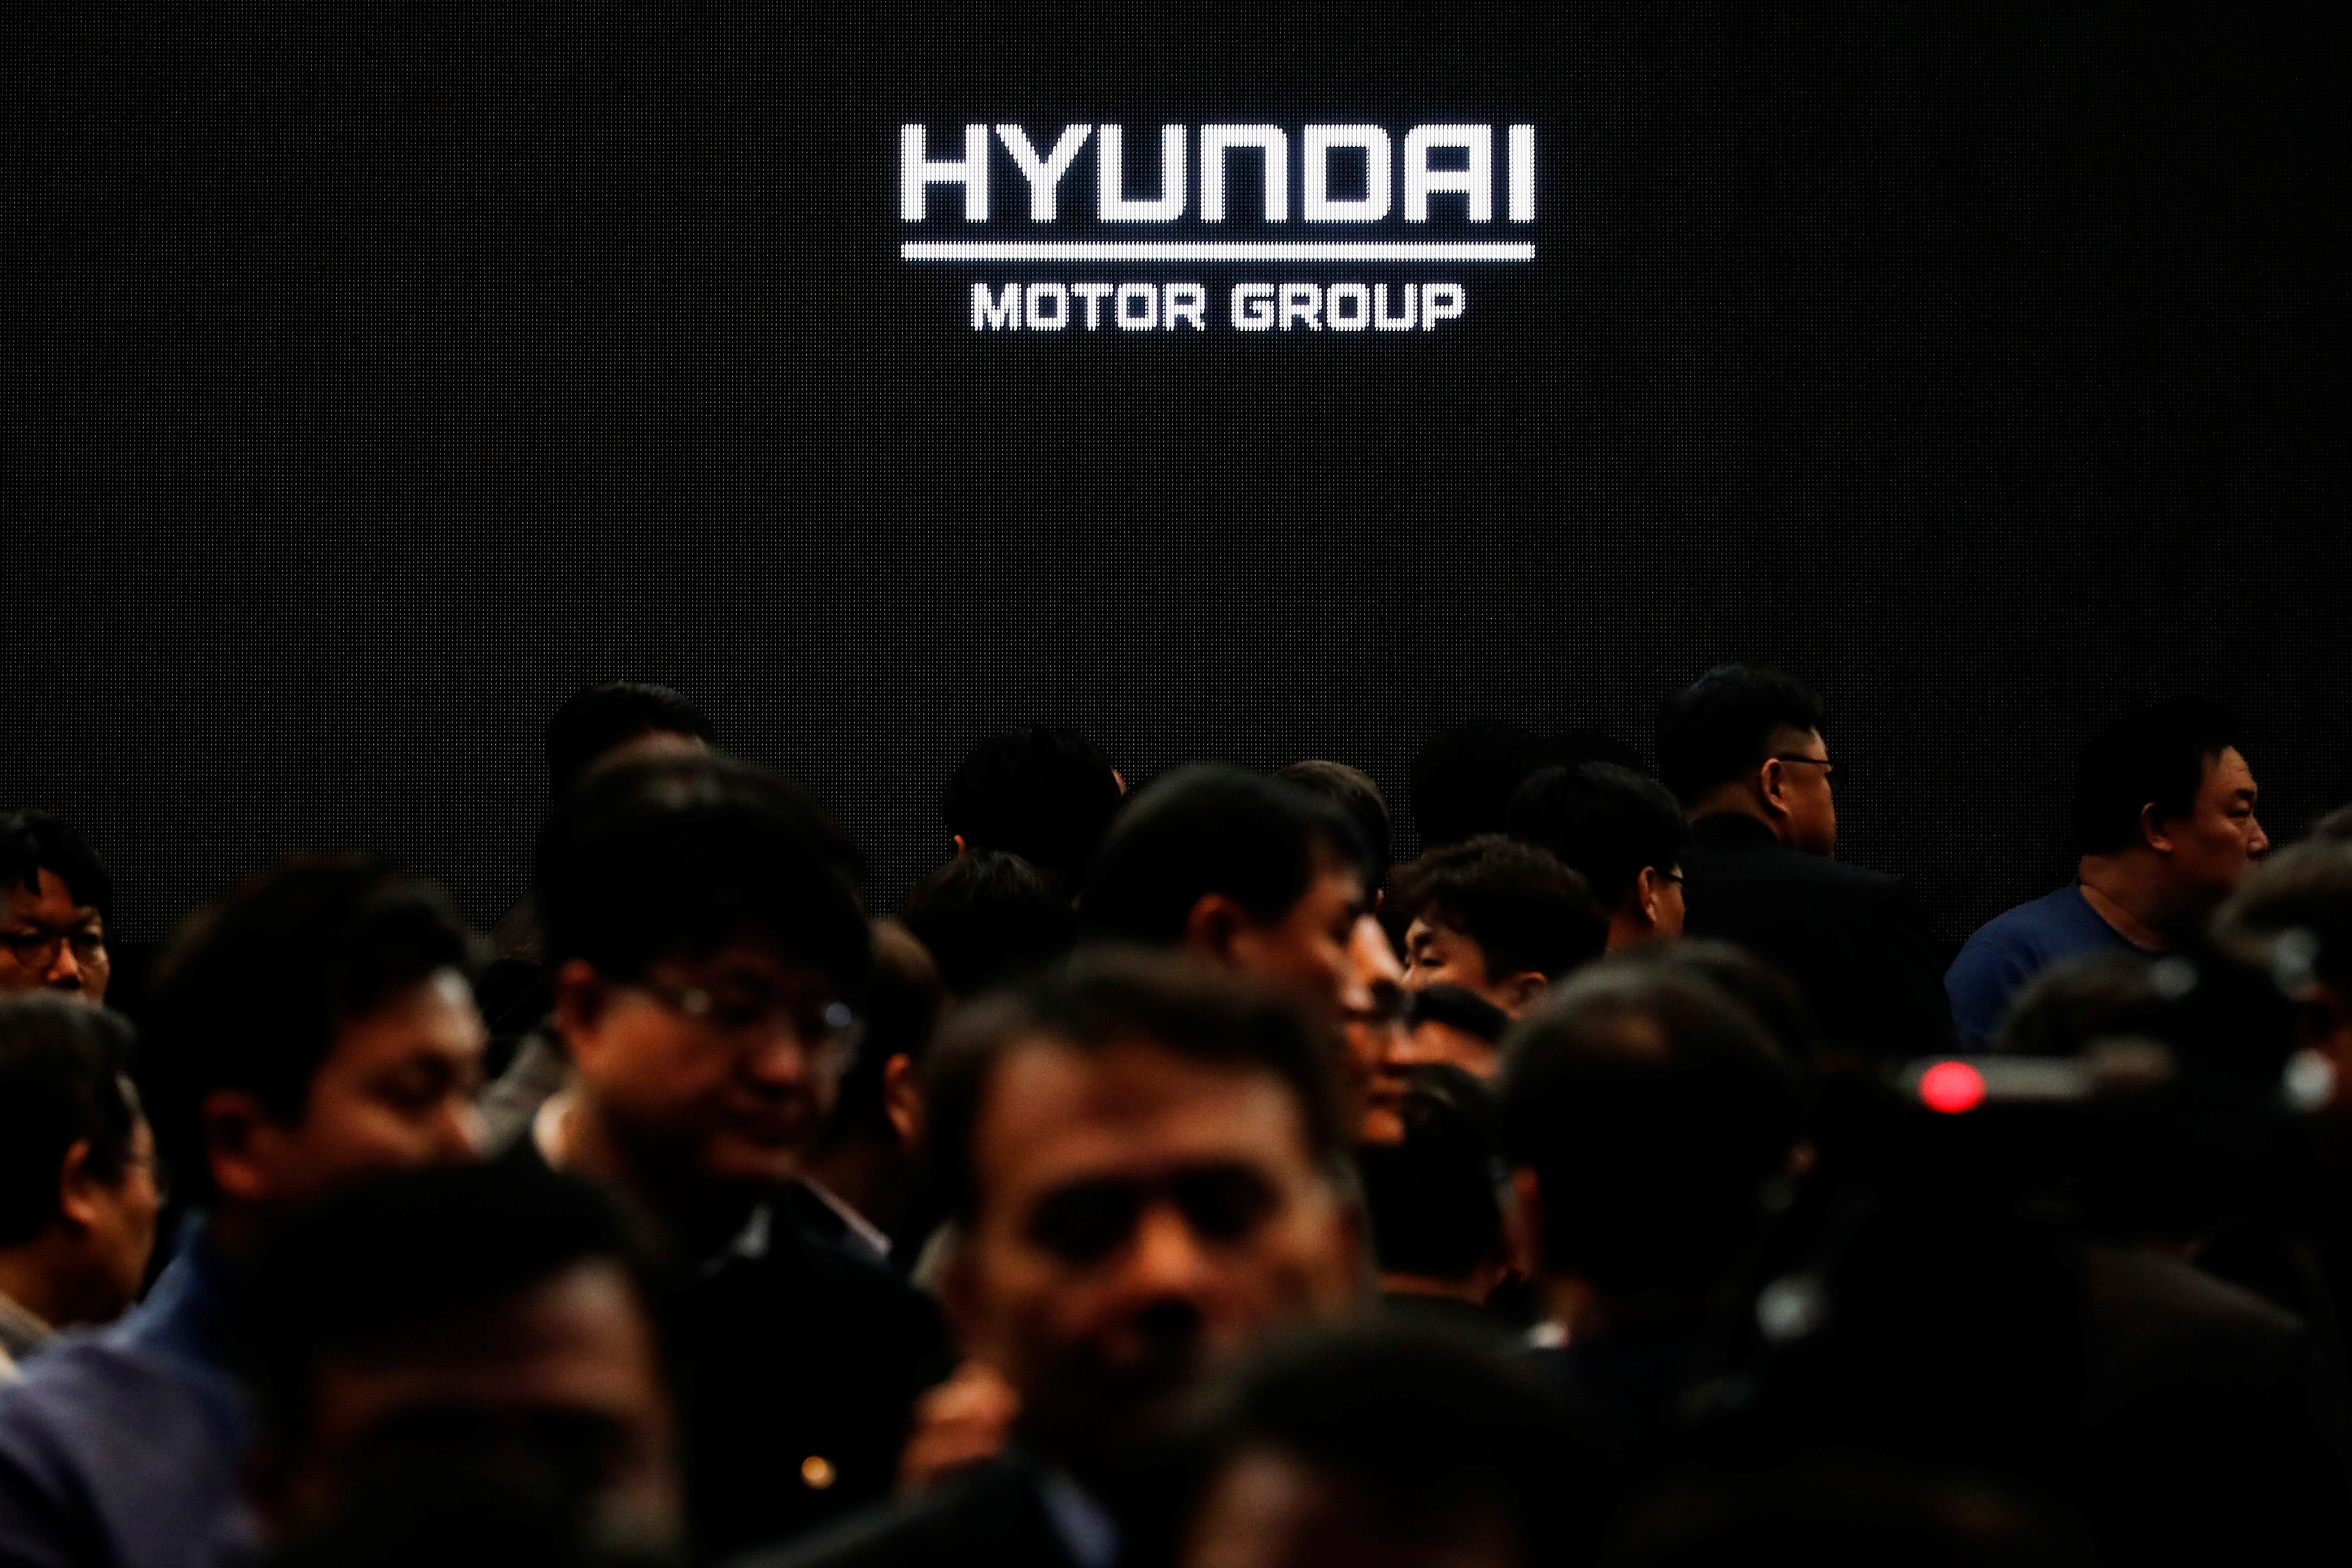 Employees of Hyundai Motor Group leave after the company's new year ceremony in Seoul, South Korea, January 2, 2020. REUTERS/Kim Hong-Ji